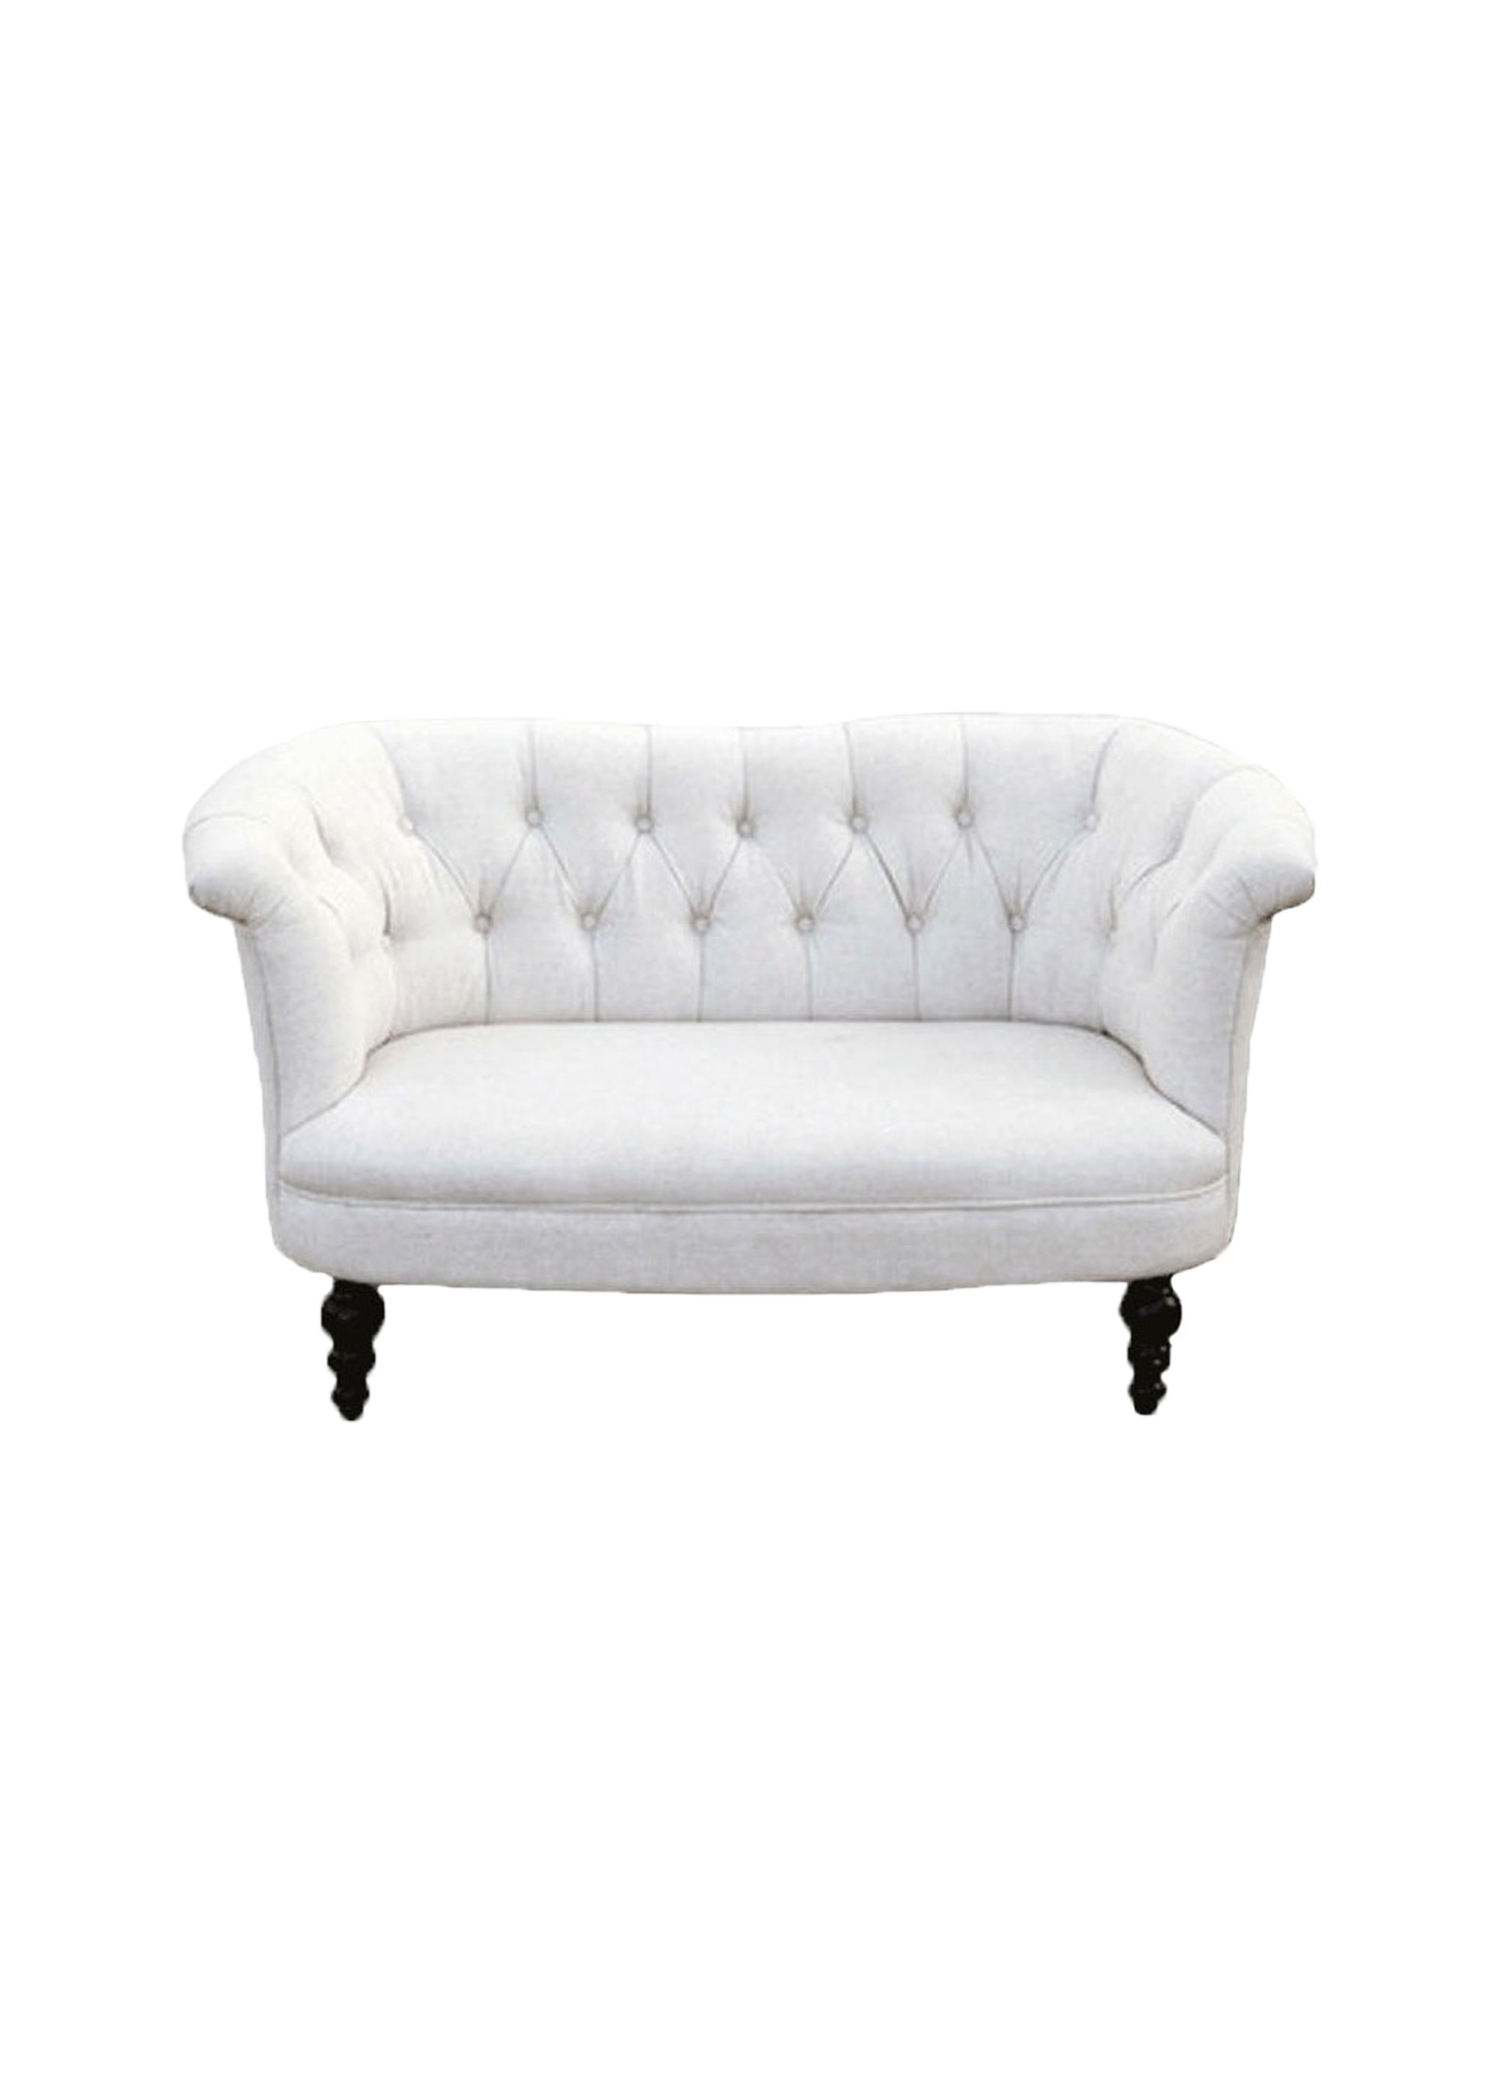 $150 Sweetheart Cream Tufted Sofa